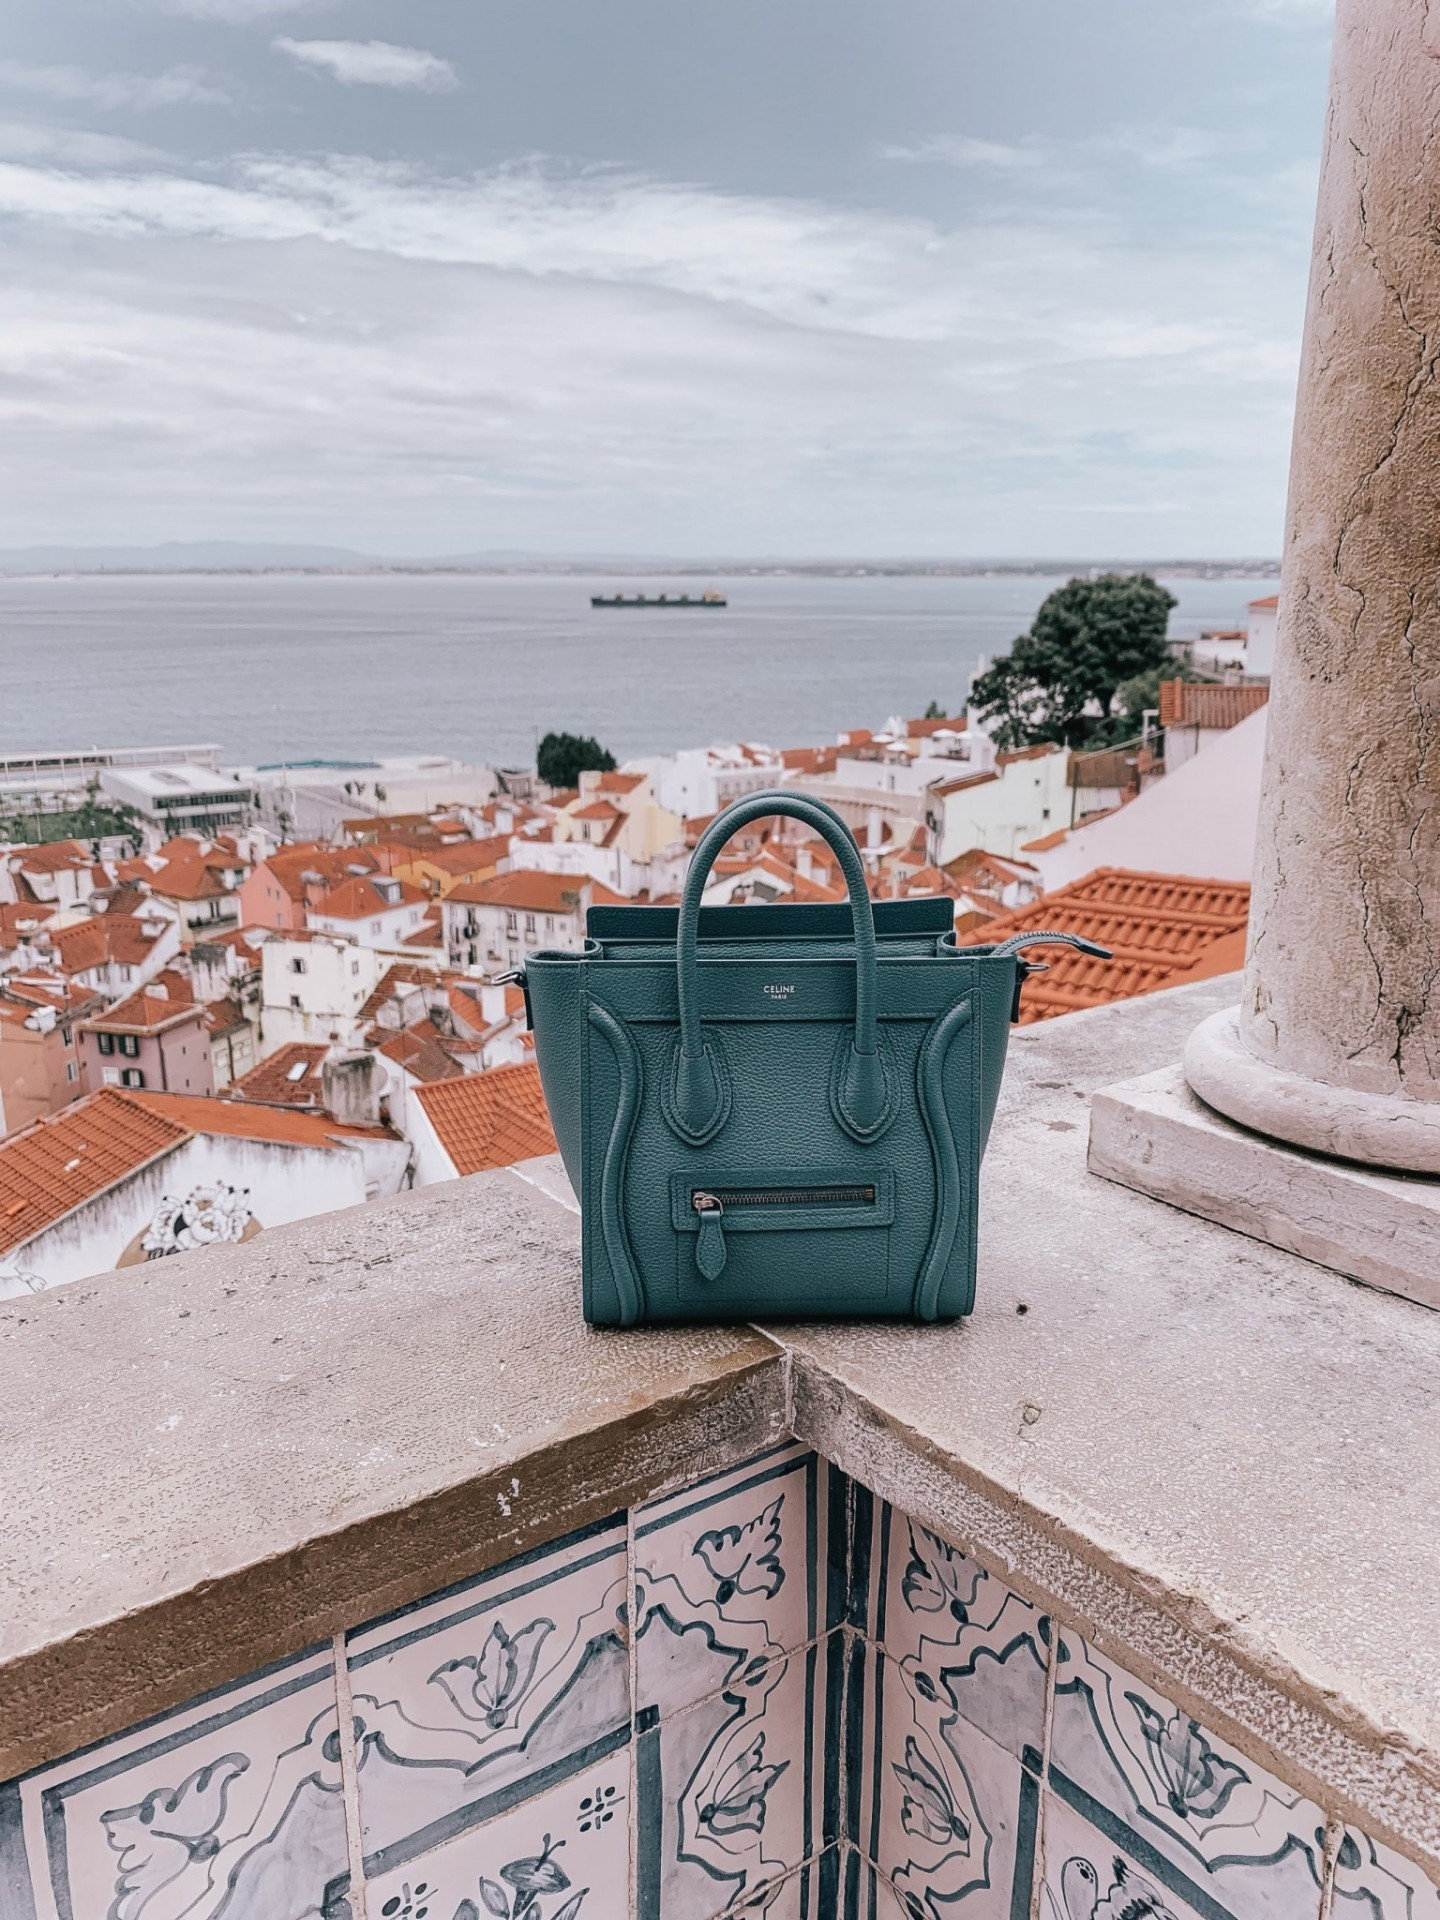 Lifestyle blogger Mollie Moore shares a Lisbon travel guide | Visiting Portugal: The Ultimate Lisbon Travel Guide & the Best Things to Do by popular London travel blogger, Mollie Moore: image of a Celine bag on a balcony with the city of Lisbon, Portugal in the distance.